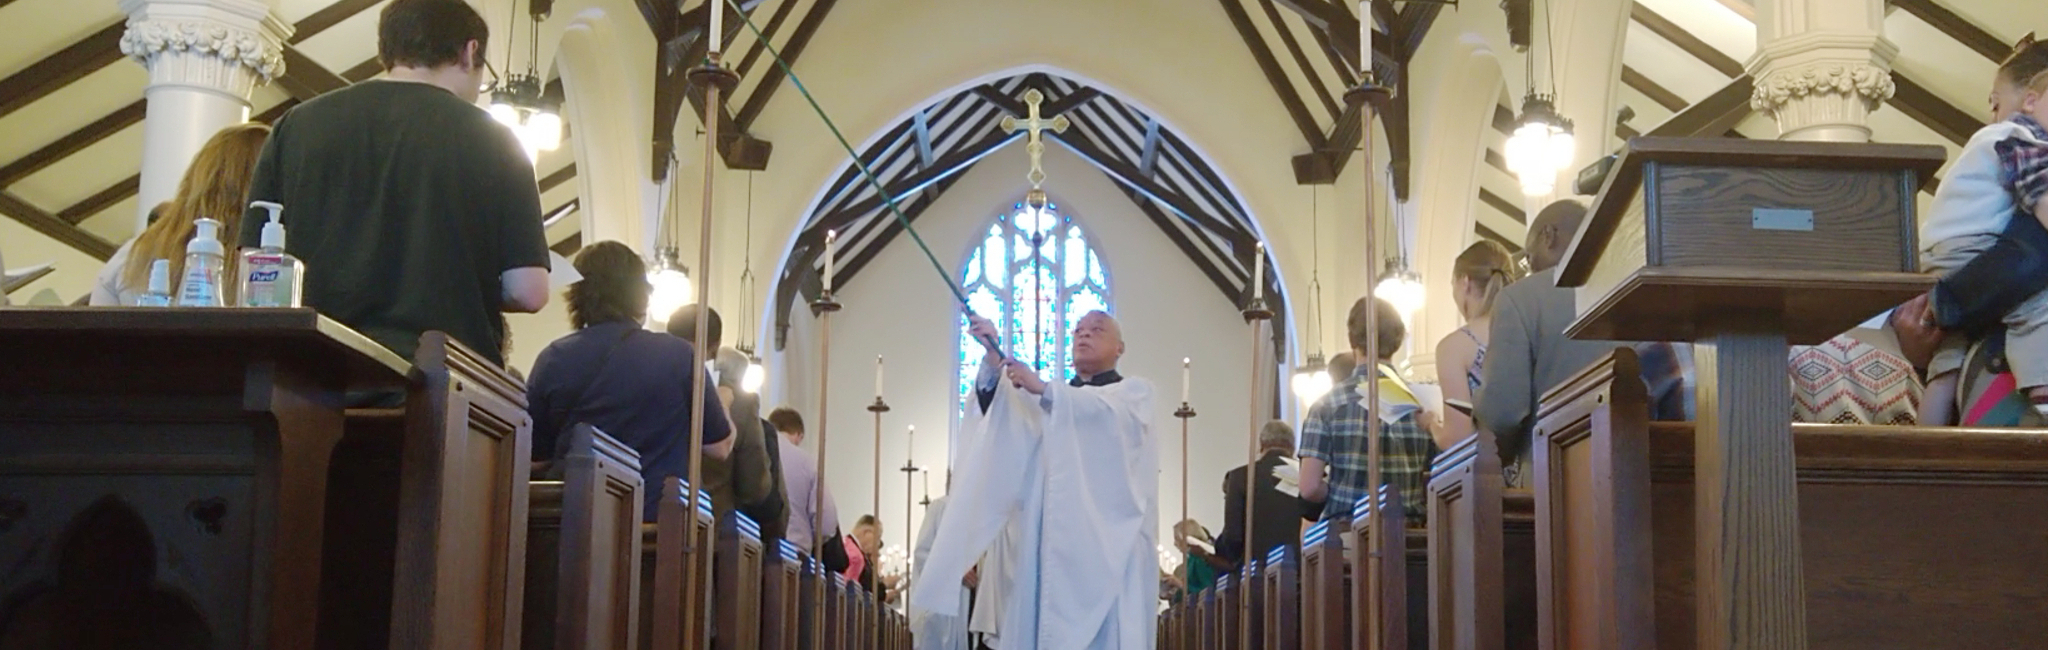 Photograph of a special church procession at Saint Peter's Episcopal Church